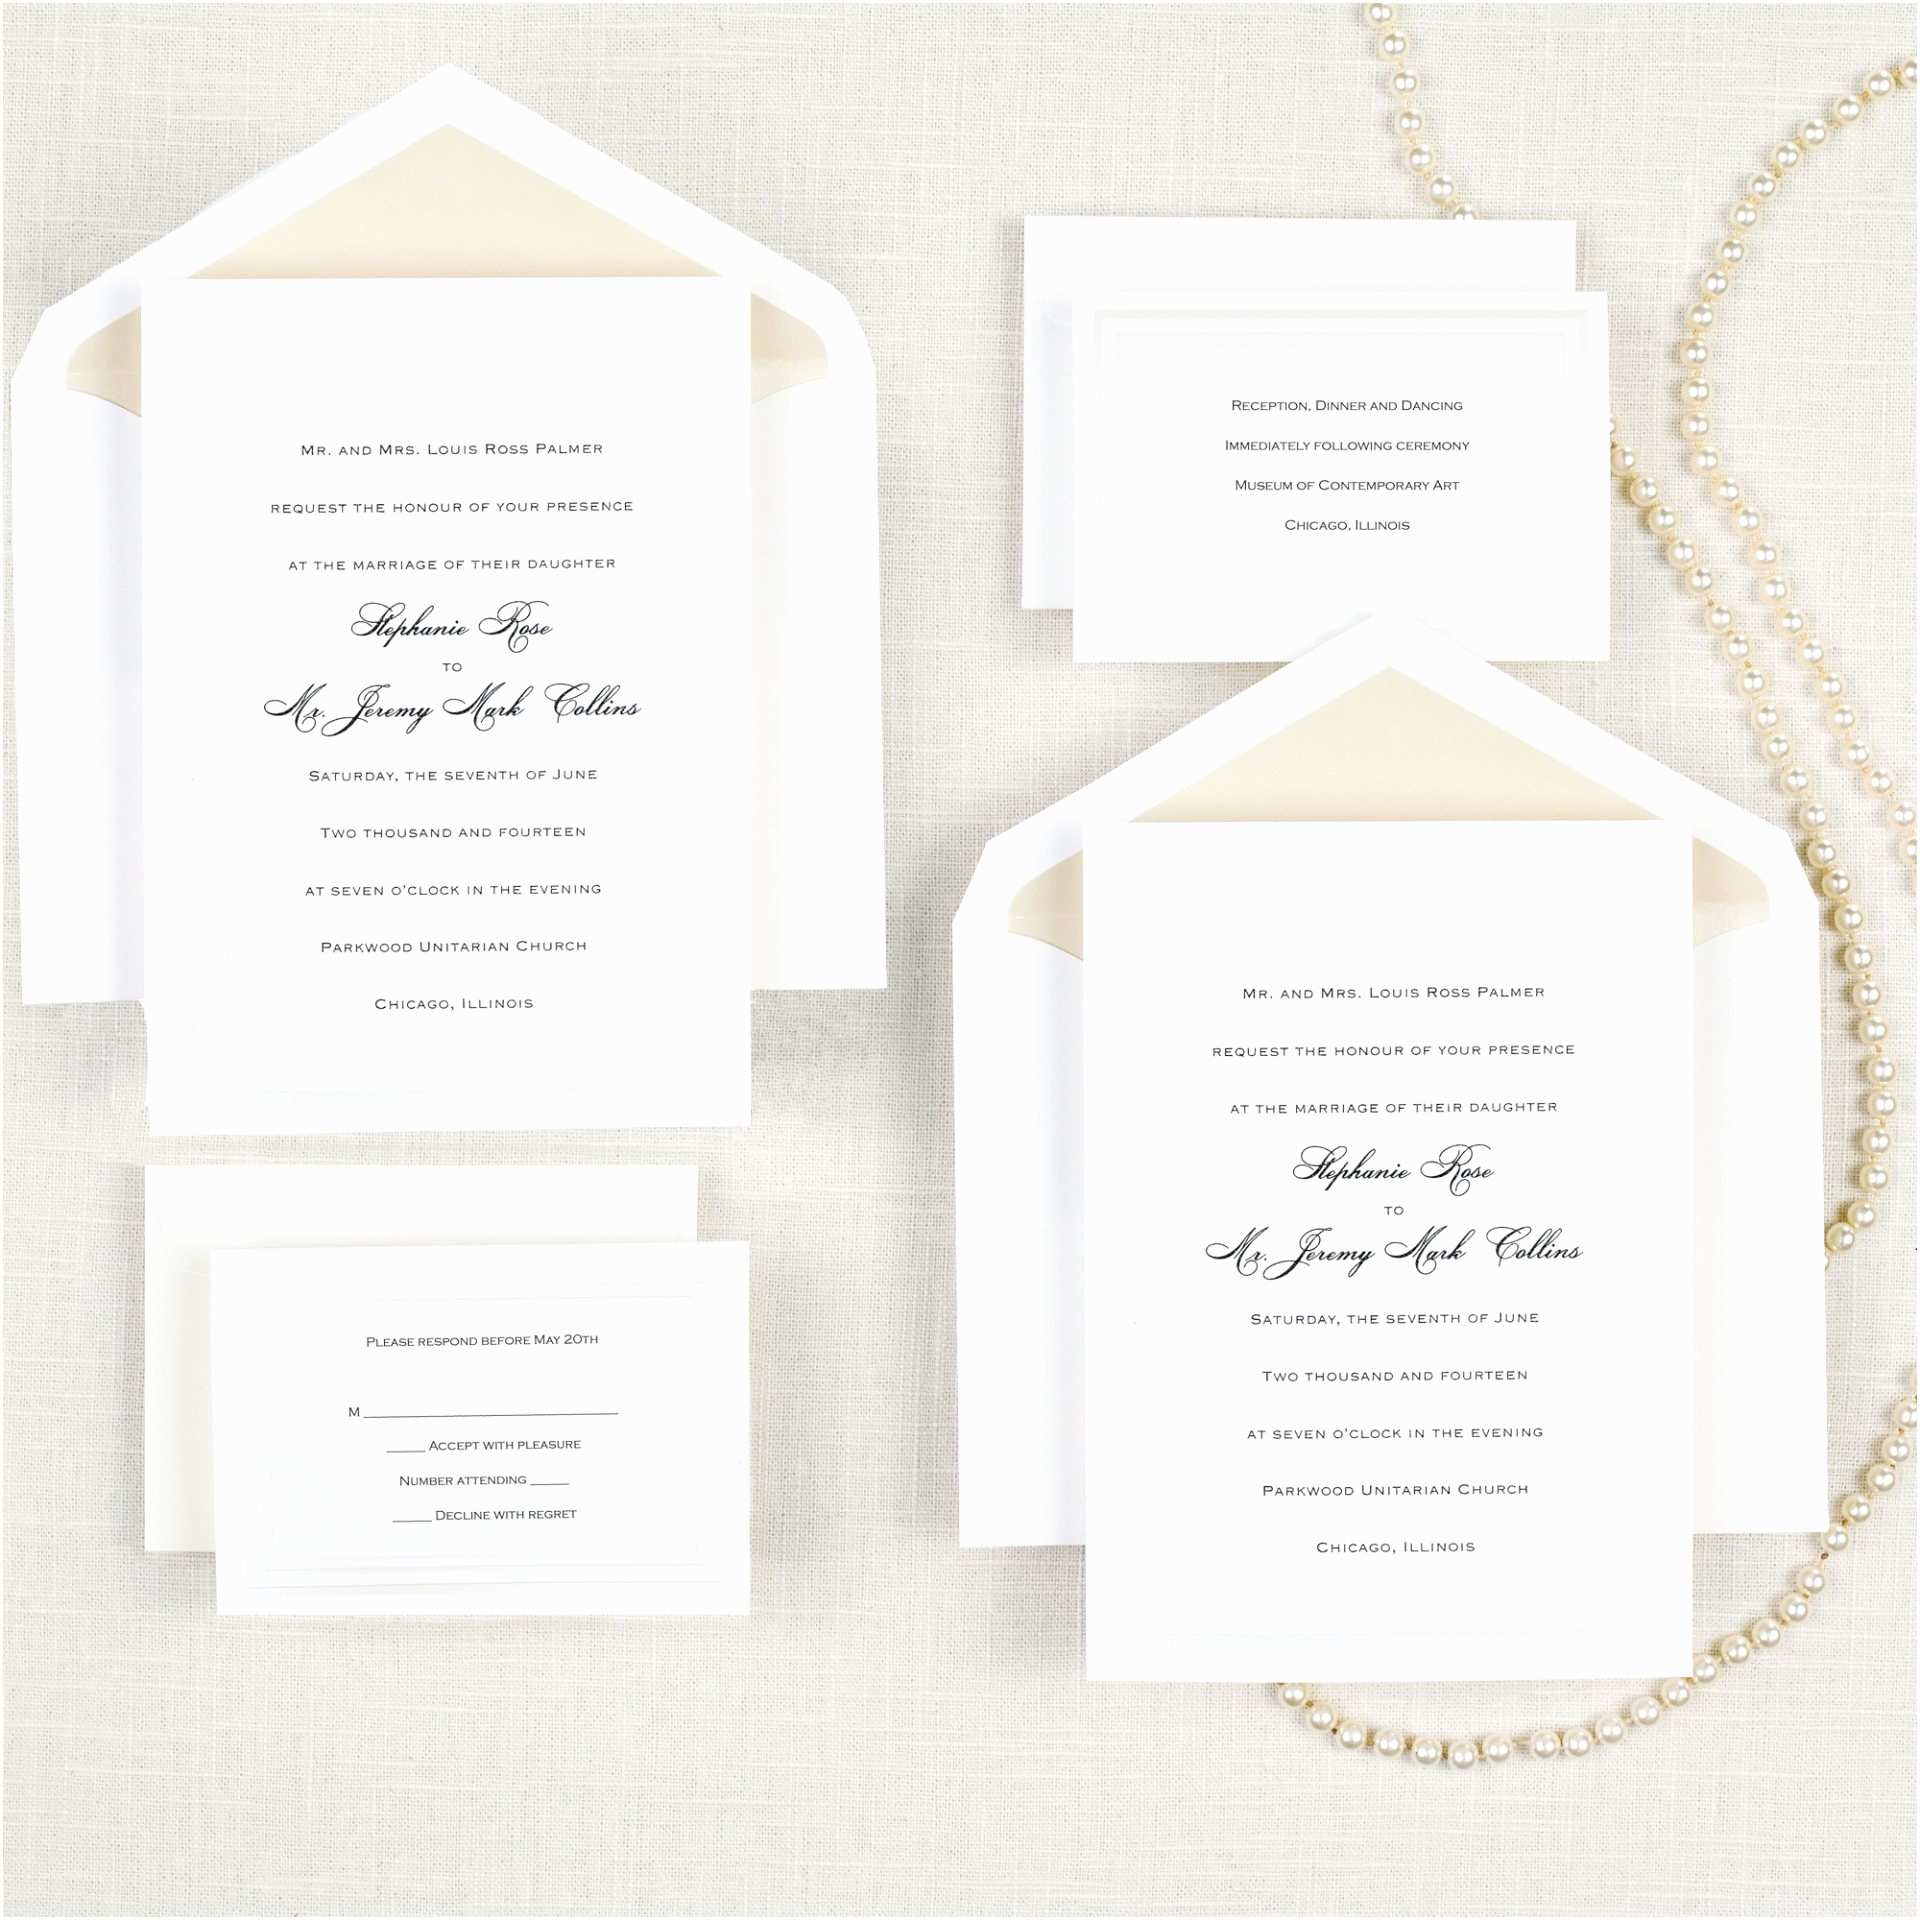 Bulk Wedding Invitations Exceptional Bulk Wedding Invitation Kits 1 Cheap Ideas